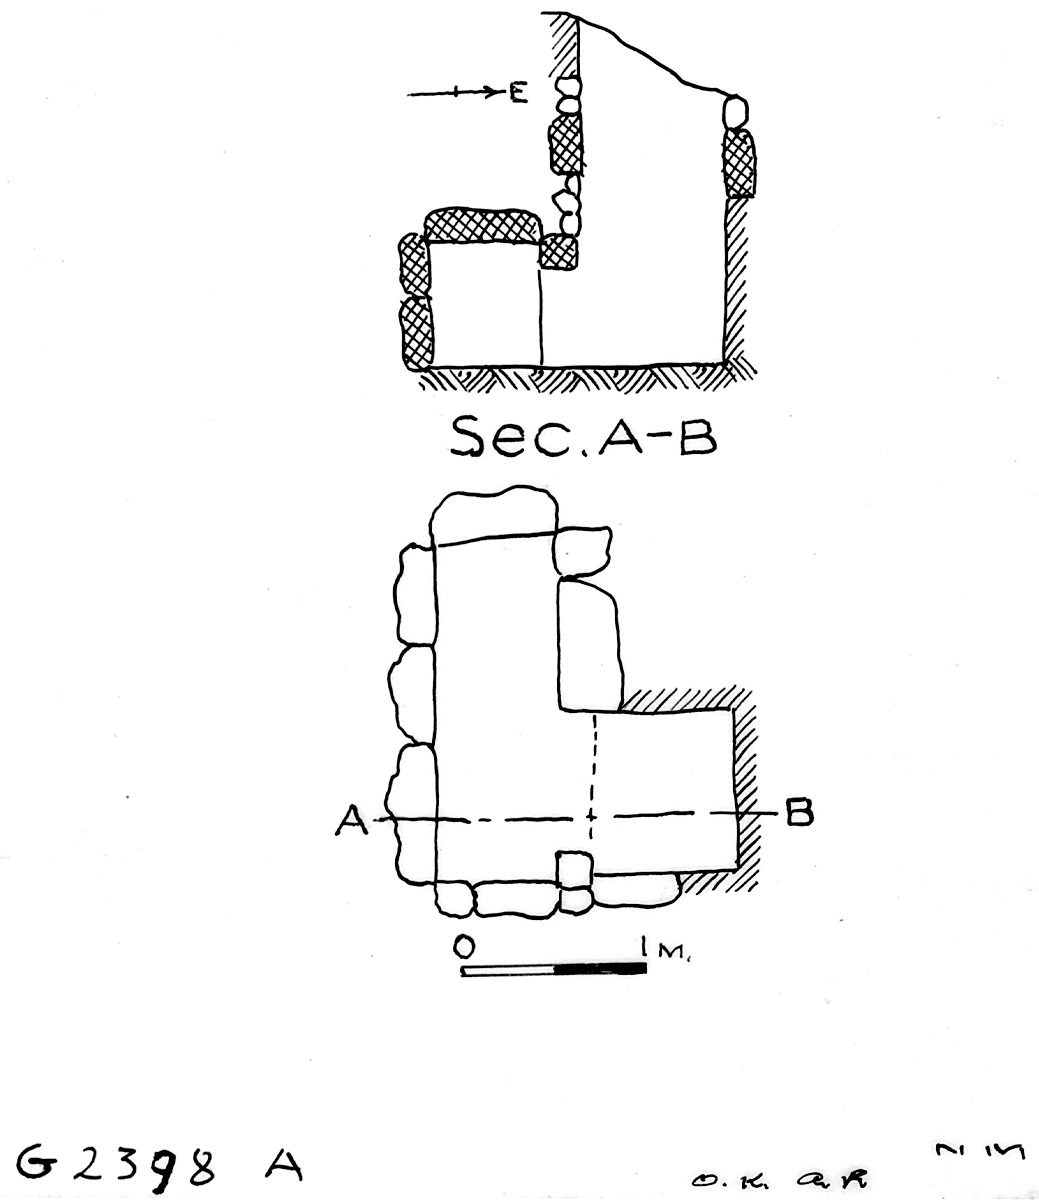 Maps and plans: G 2398, Shaft A